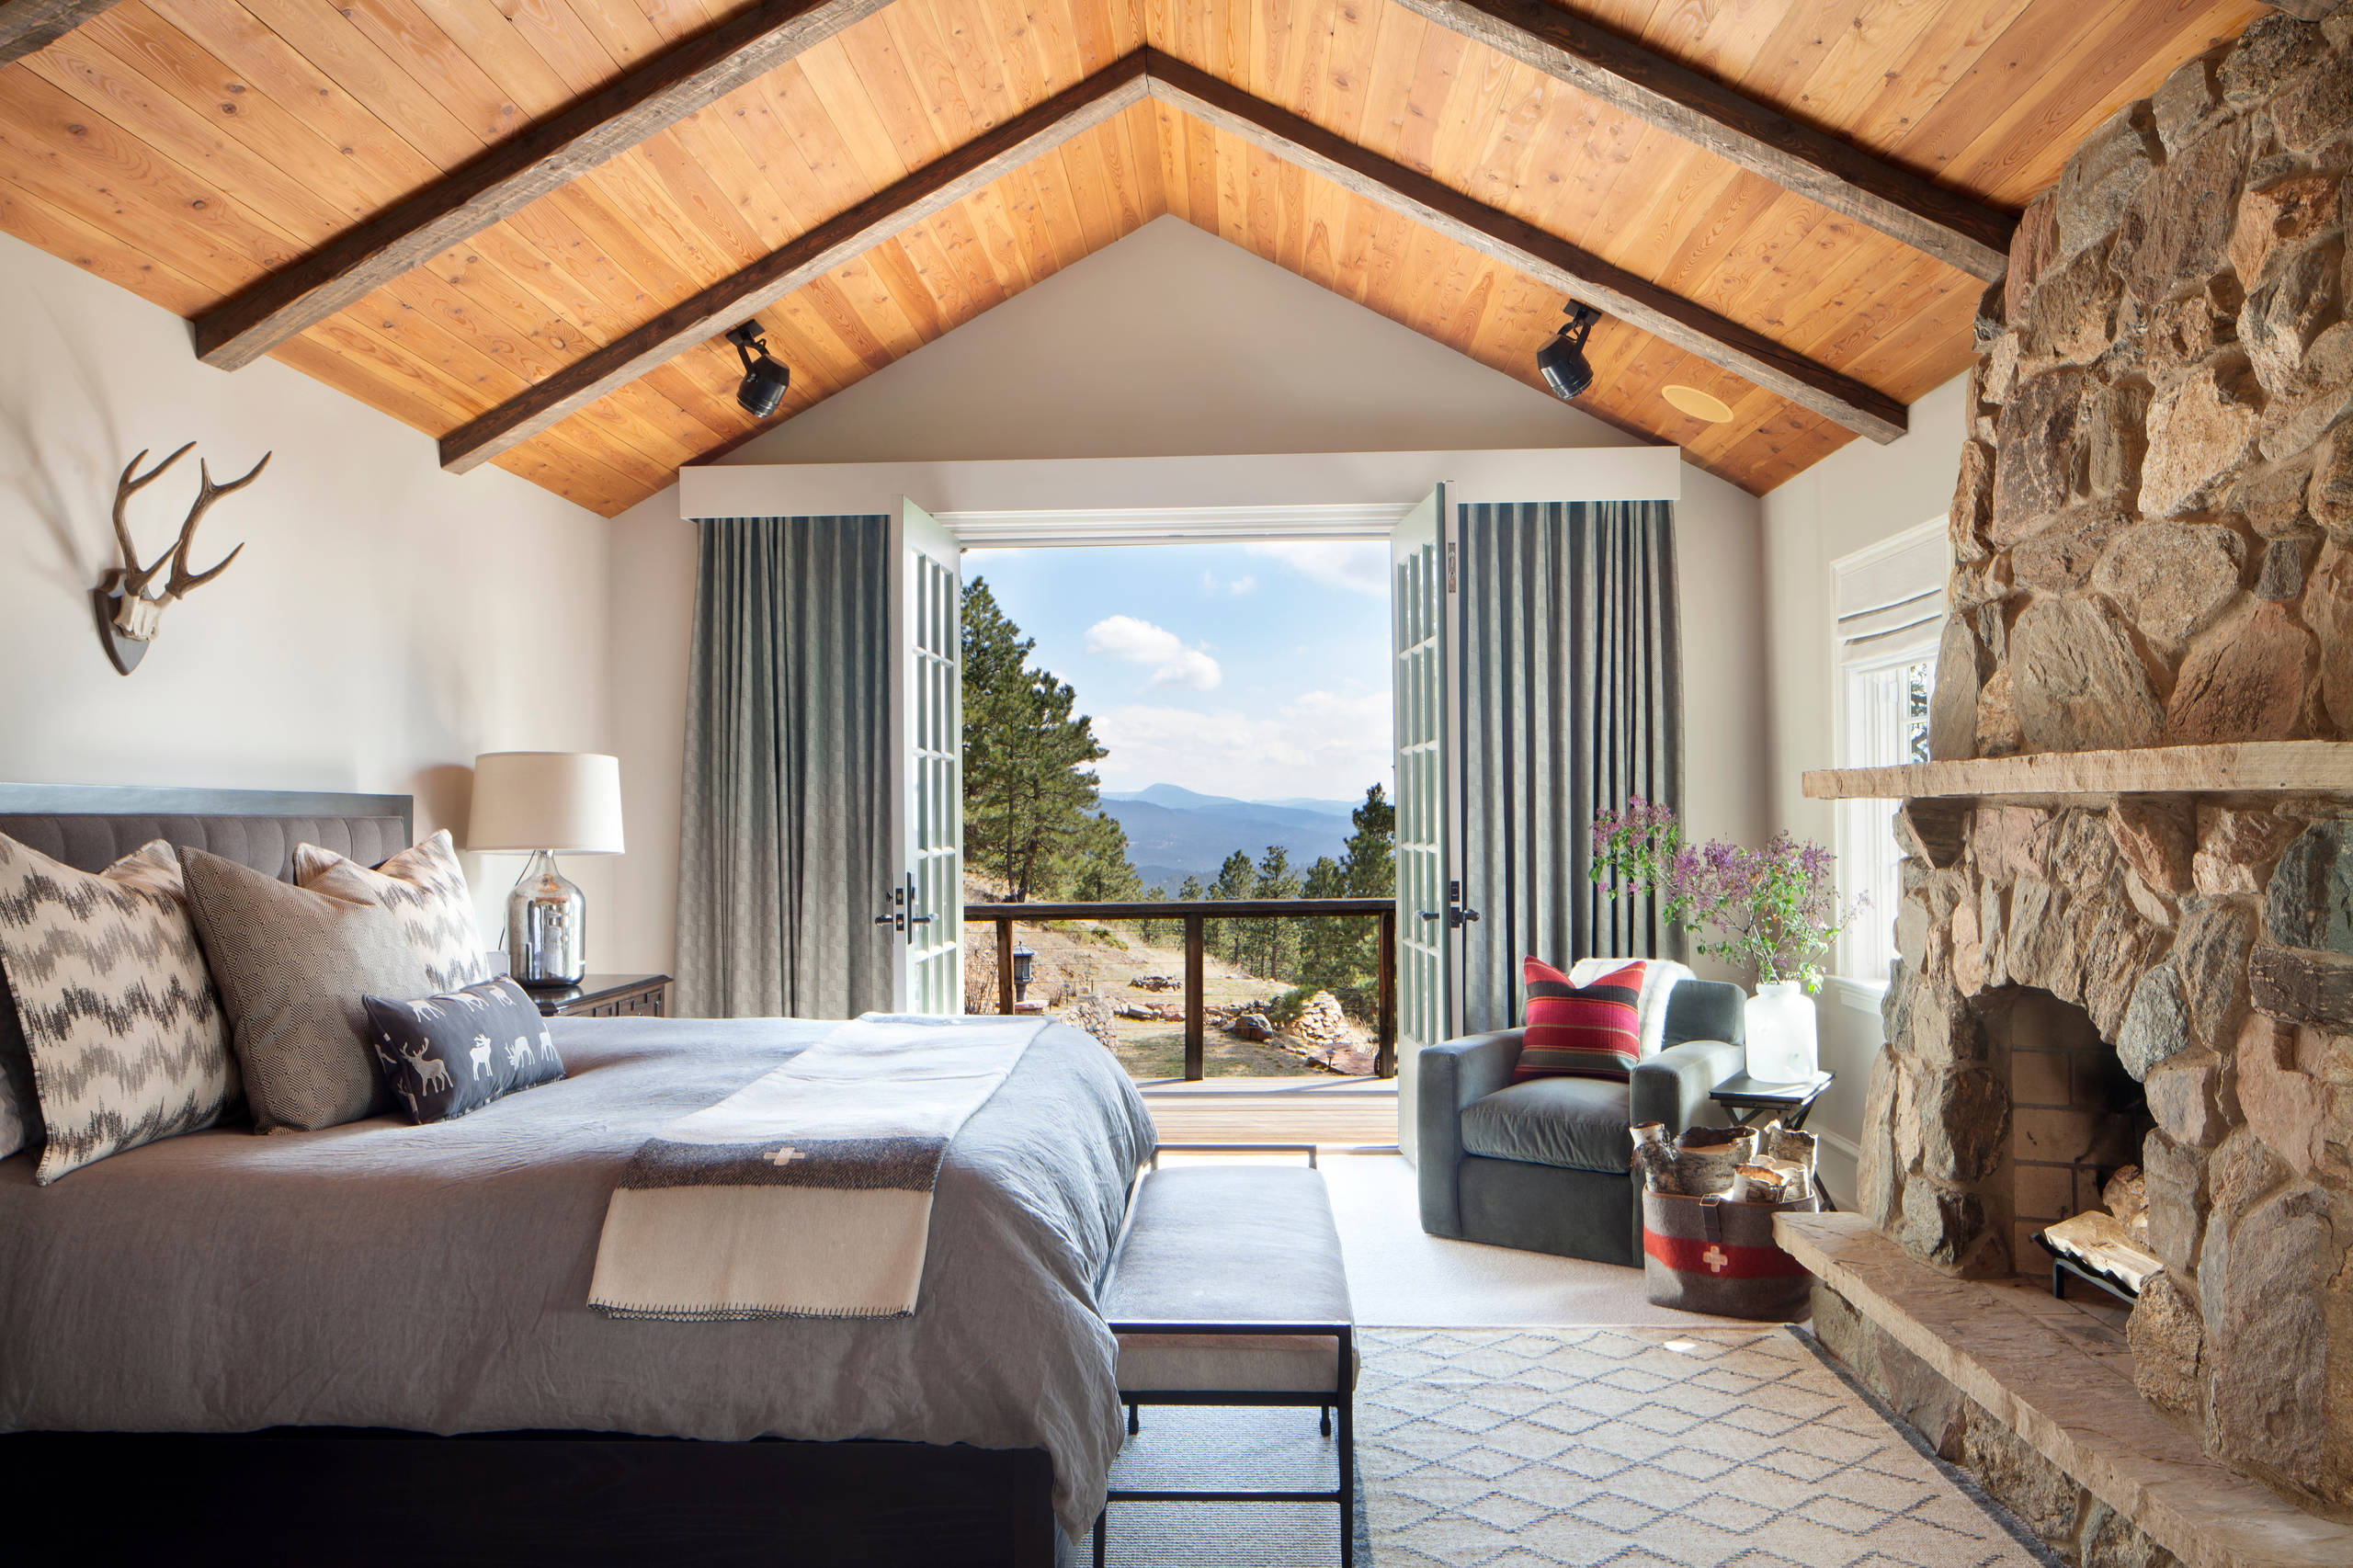 15-wicked-rustic-bedroom-designs-that-will-make-you-want-them-13